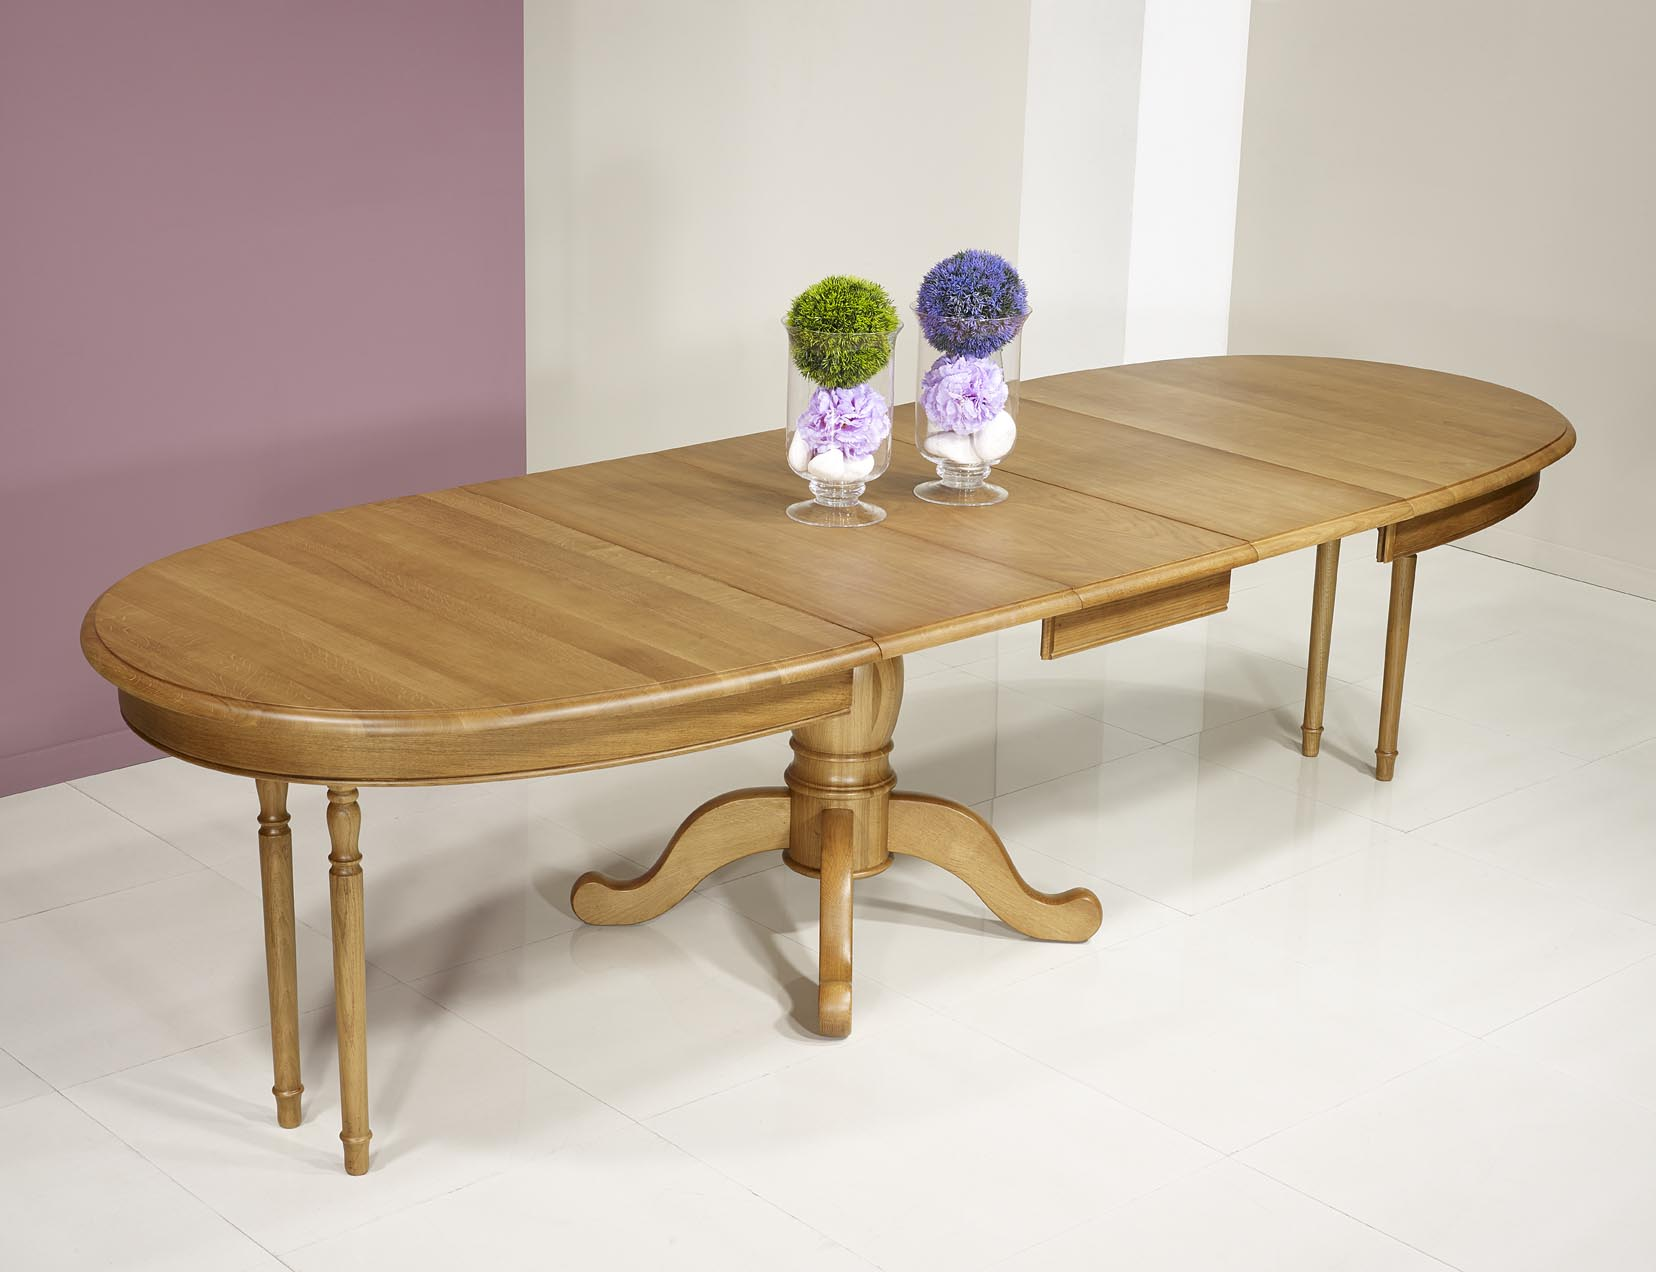 Table ovale 170x100 en ch ne massif de style louis for Table ovale allonge